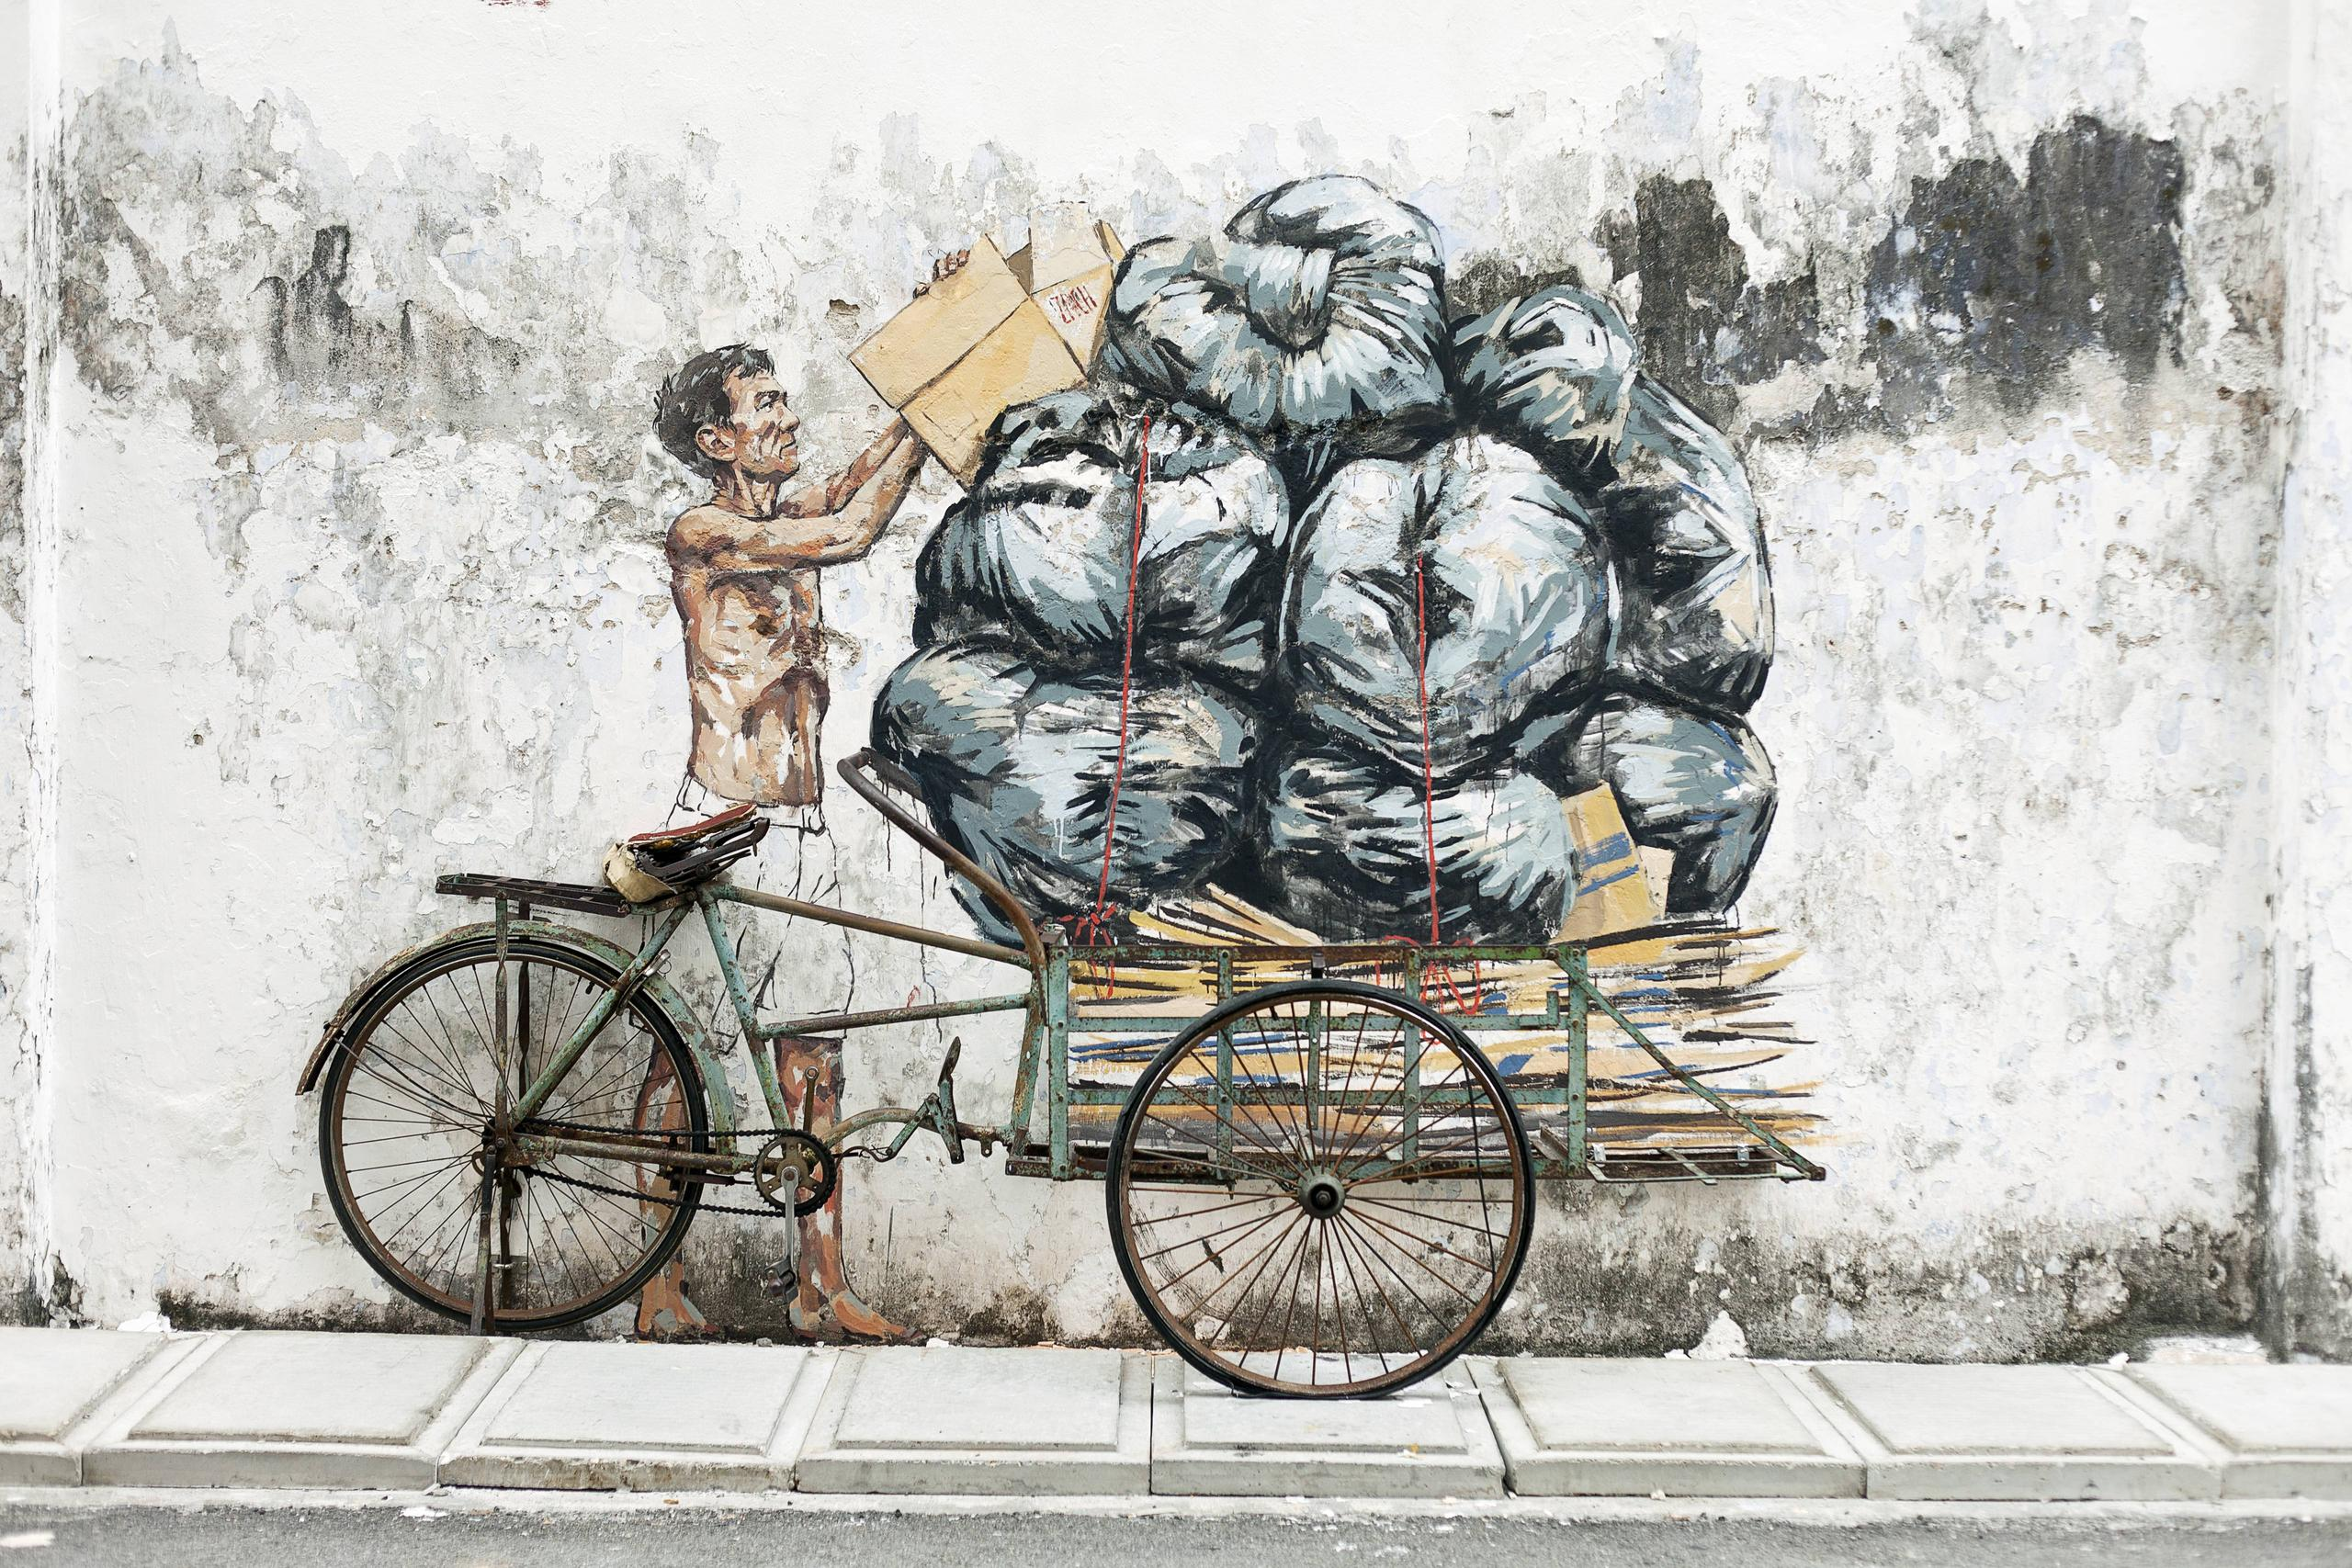 photos video ernest zacharevic on a mission to paint